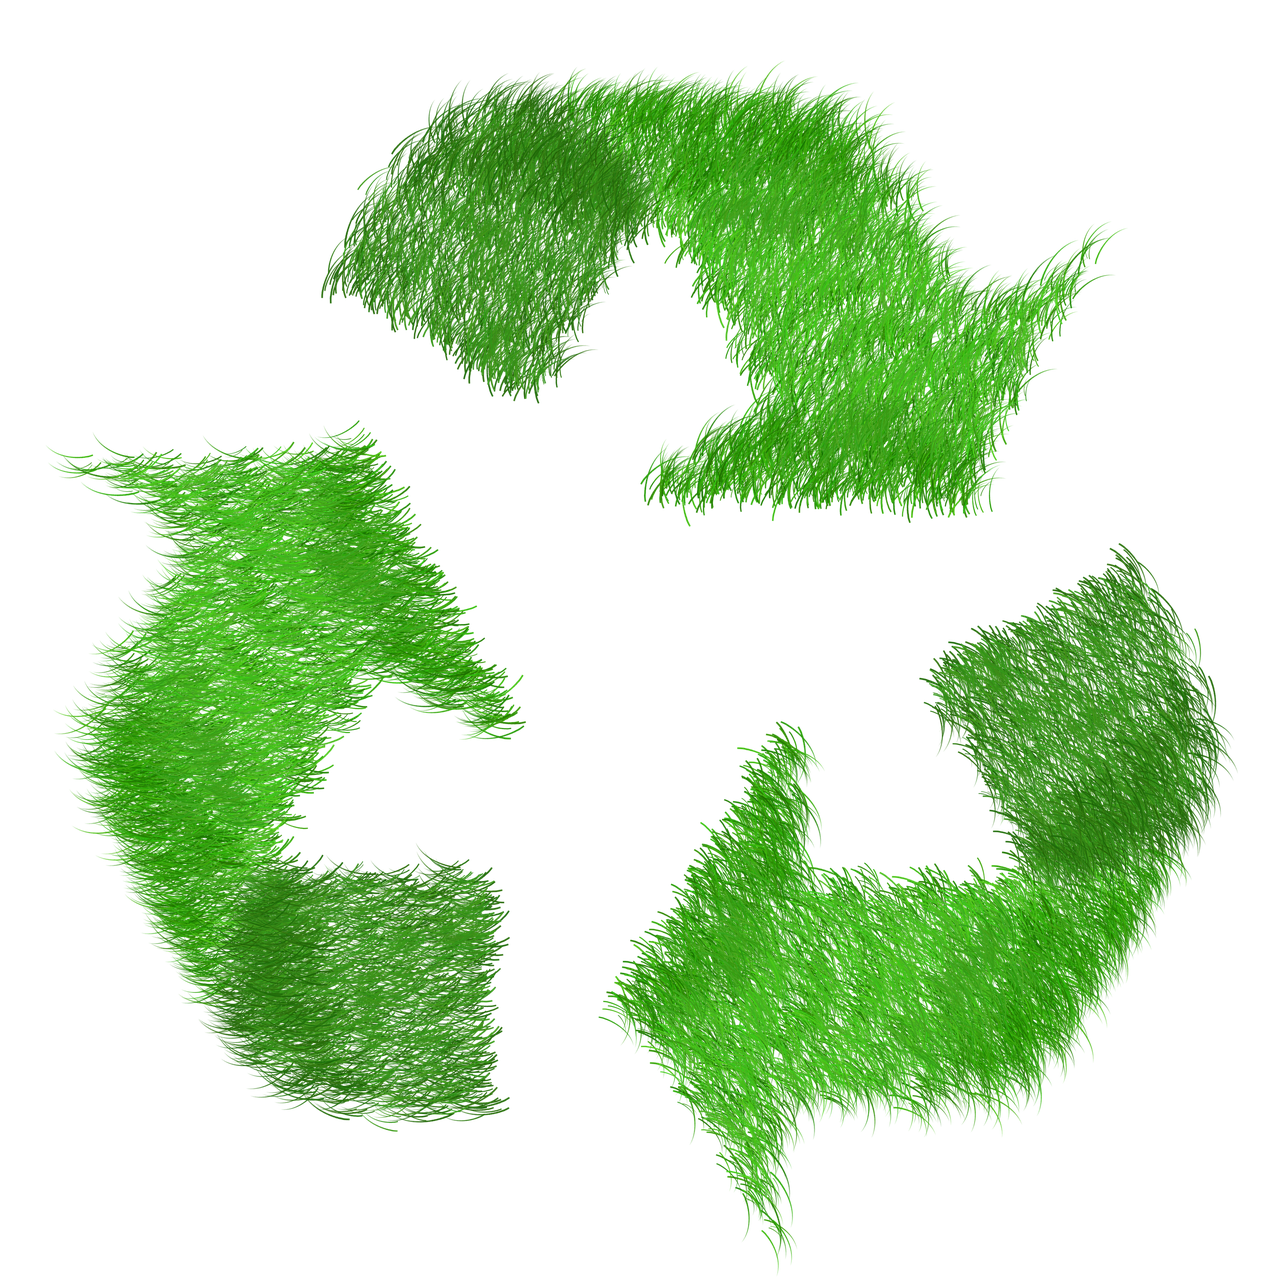 reputation can be improved by recycling